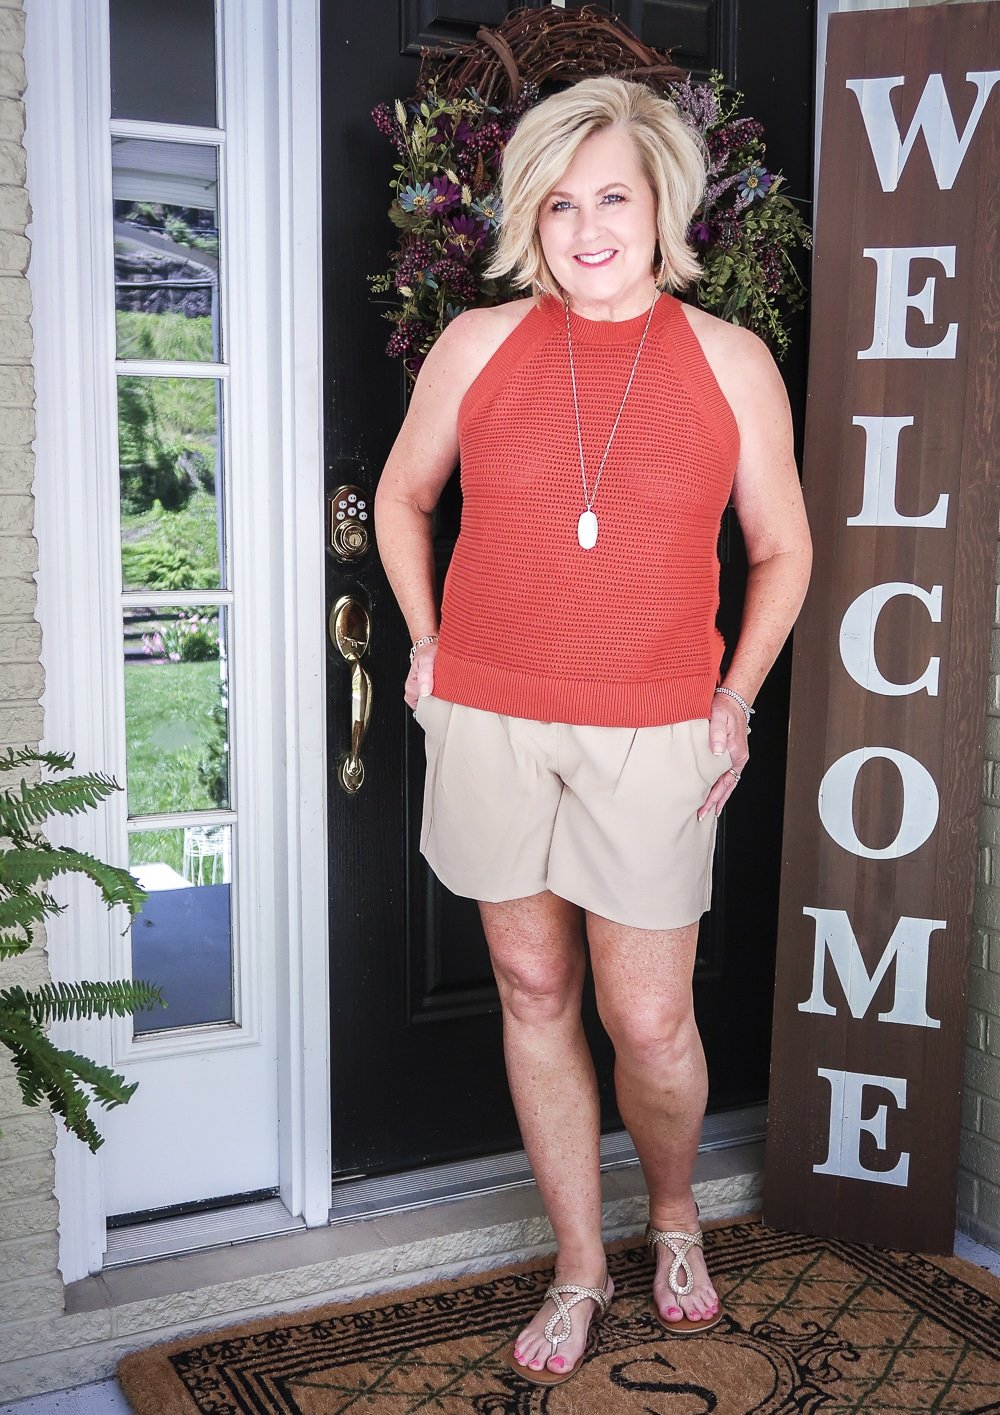 Fashion Blogger 50 Is Not Old is wearing a red clay crochet top, gold jewelry, beige linen shorts, and gold sandals